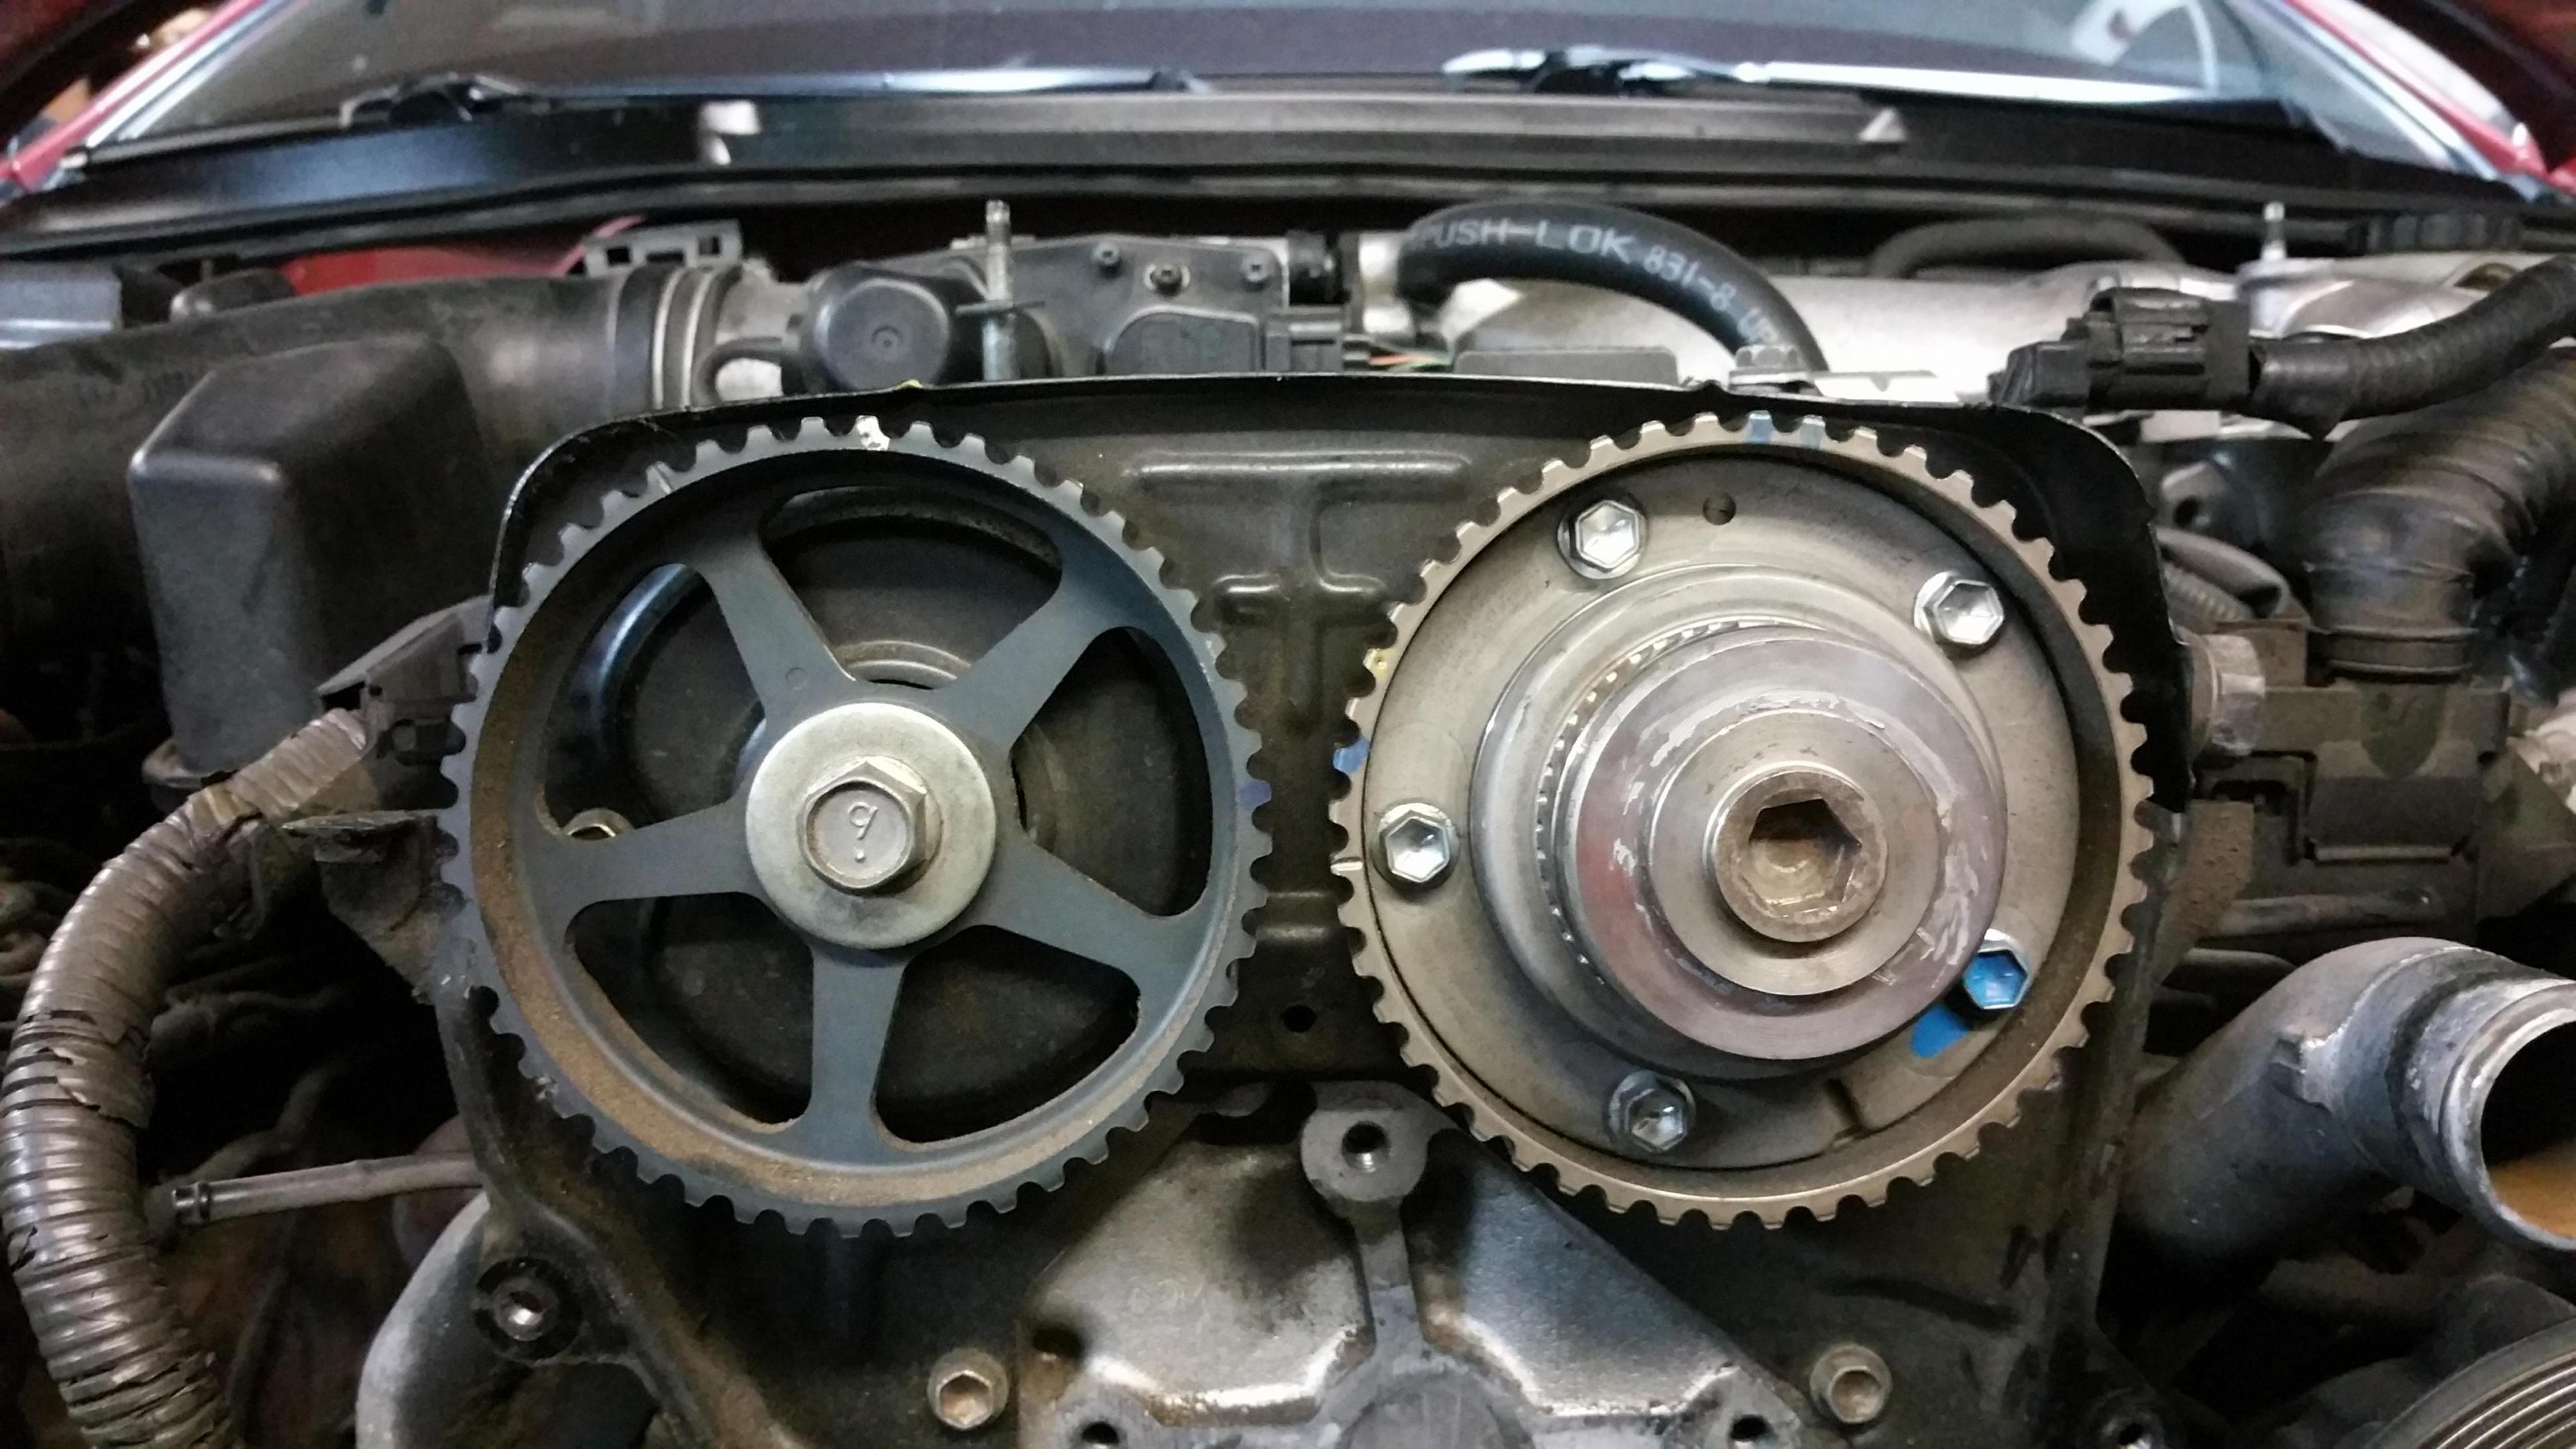 Car Won T Start >> Did timing belt and car turns over but won't start. - Lexus IS Forum